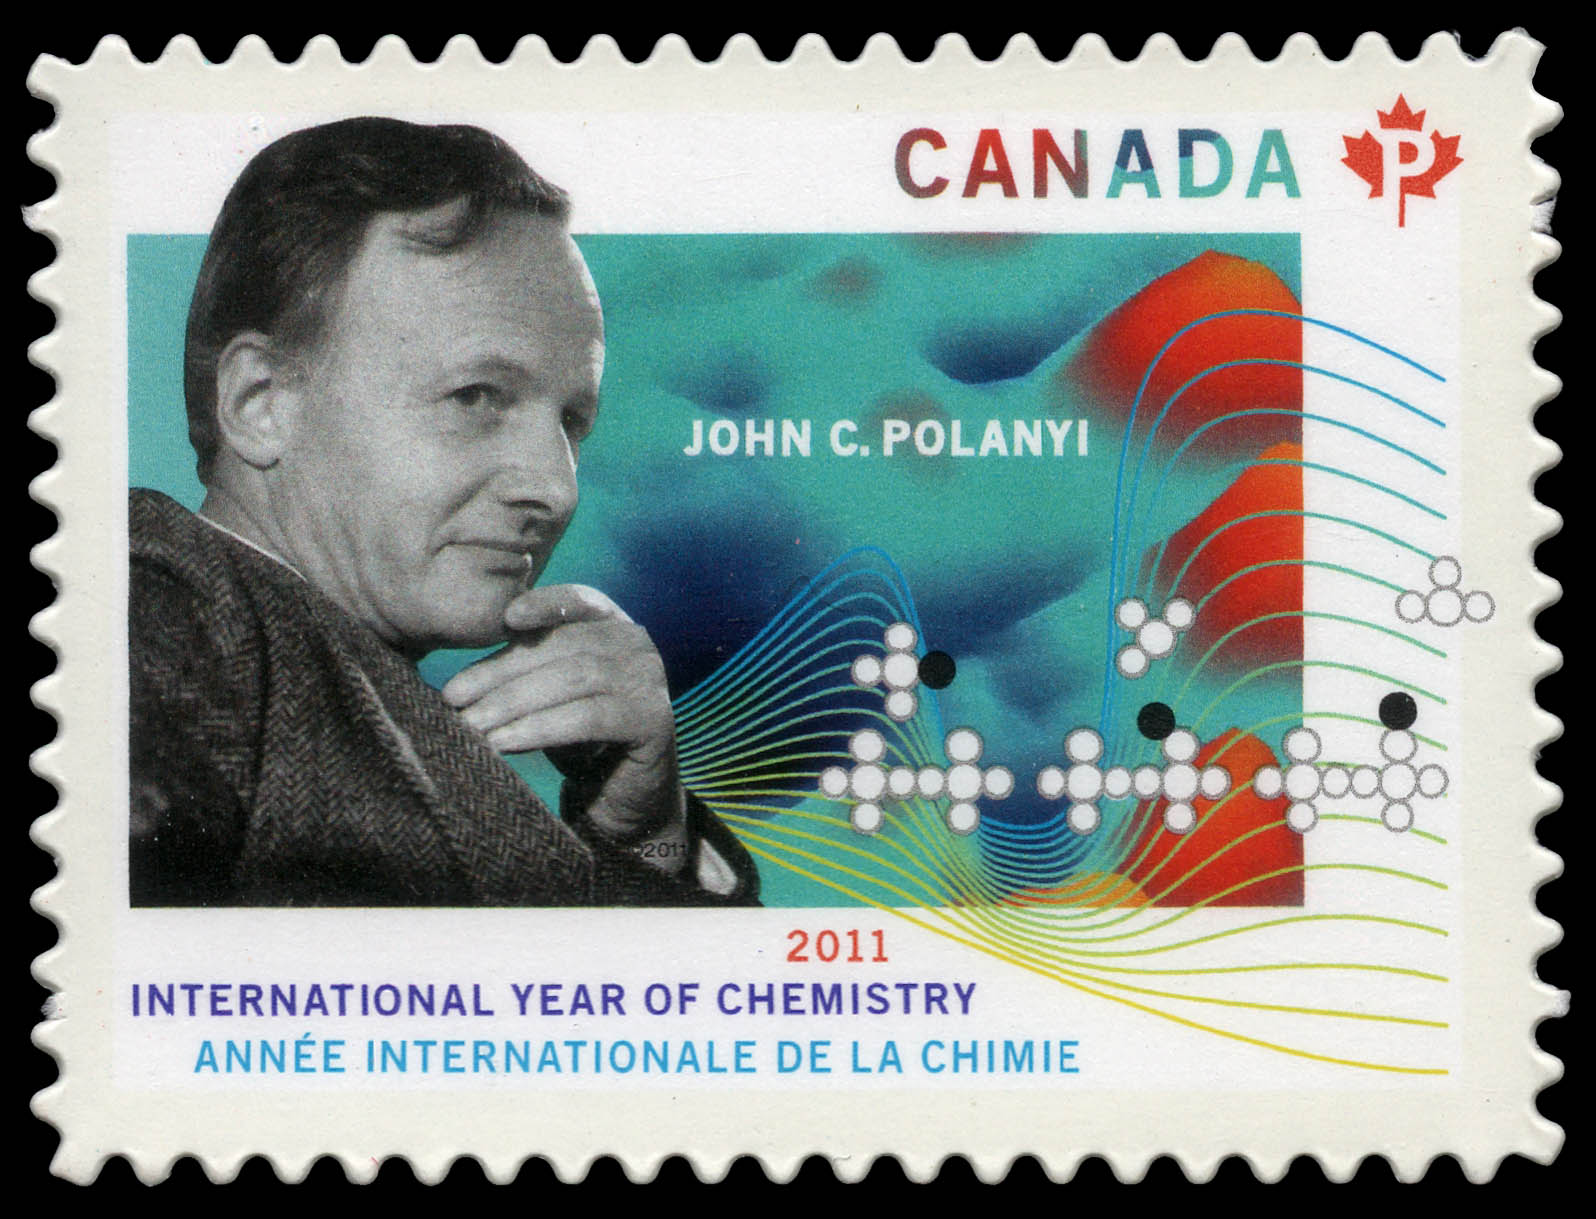 John C. Polanyi - International Year of Chemistry Canada Postage Stamp